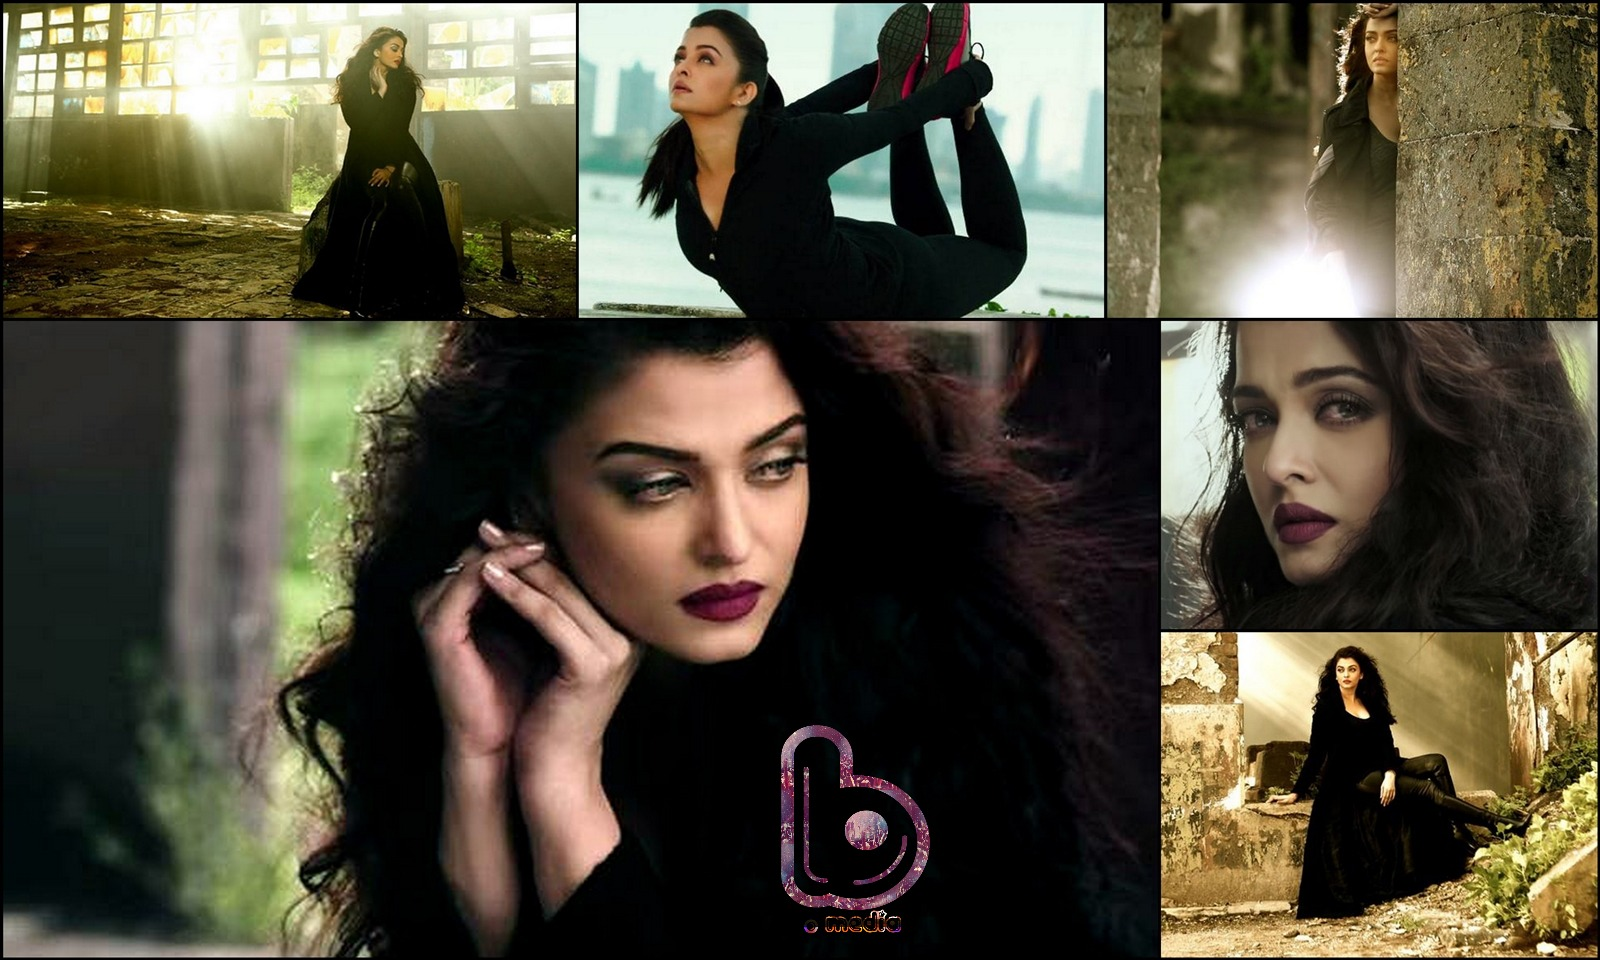 Can Aishwarya Rai make it big with her comeback film 'Jazbaa'?